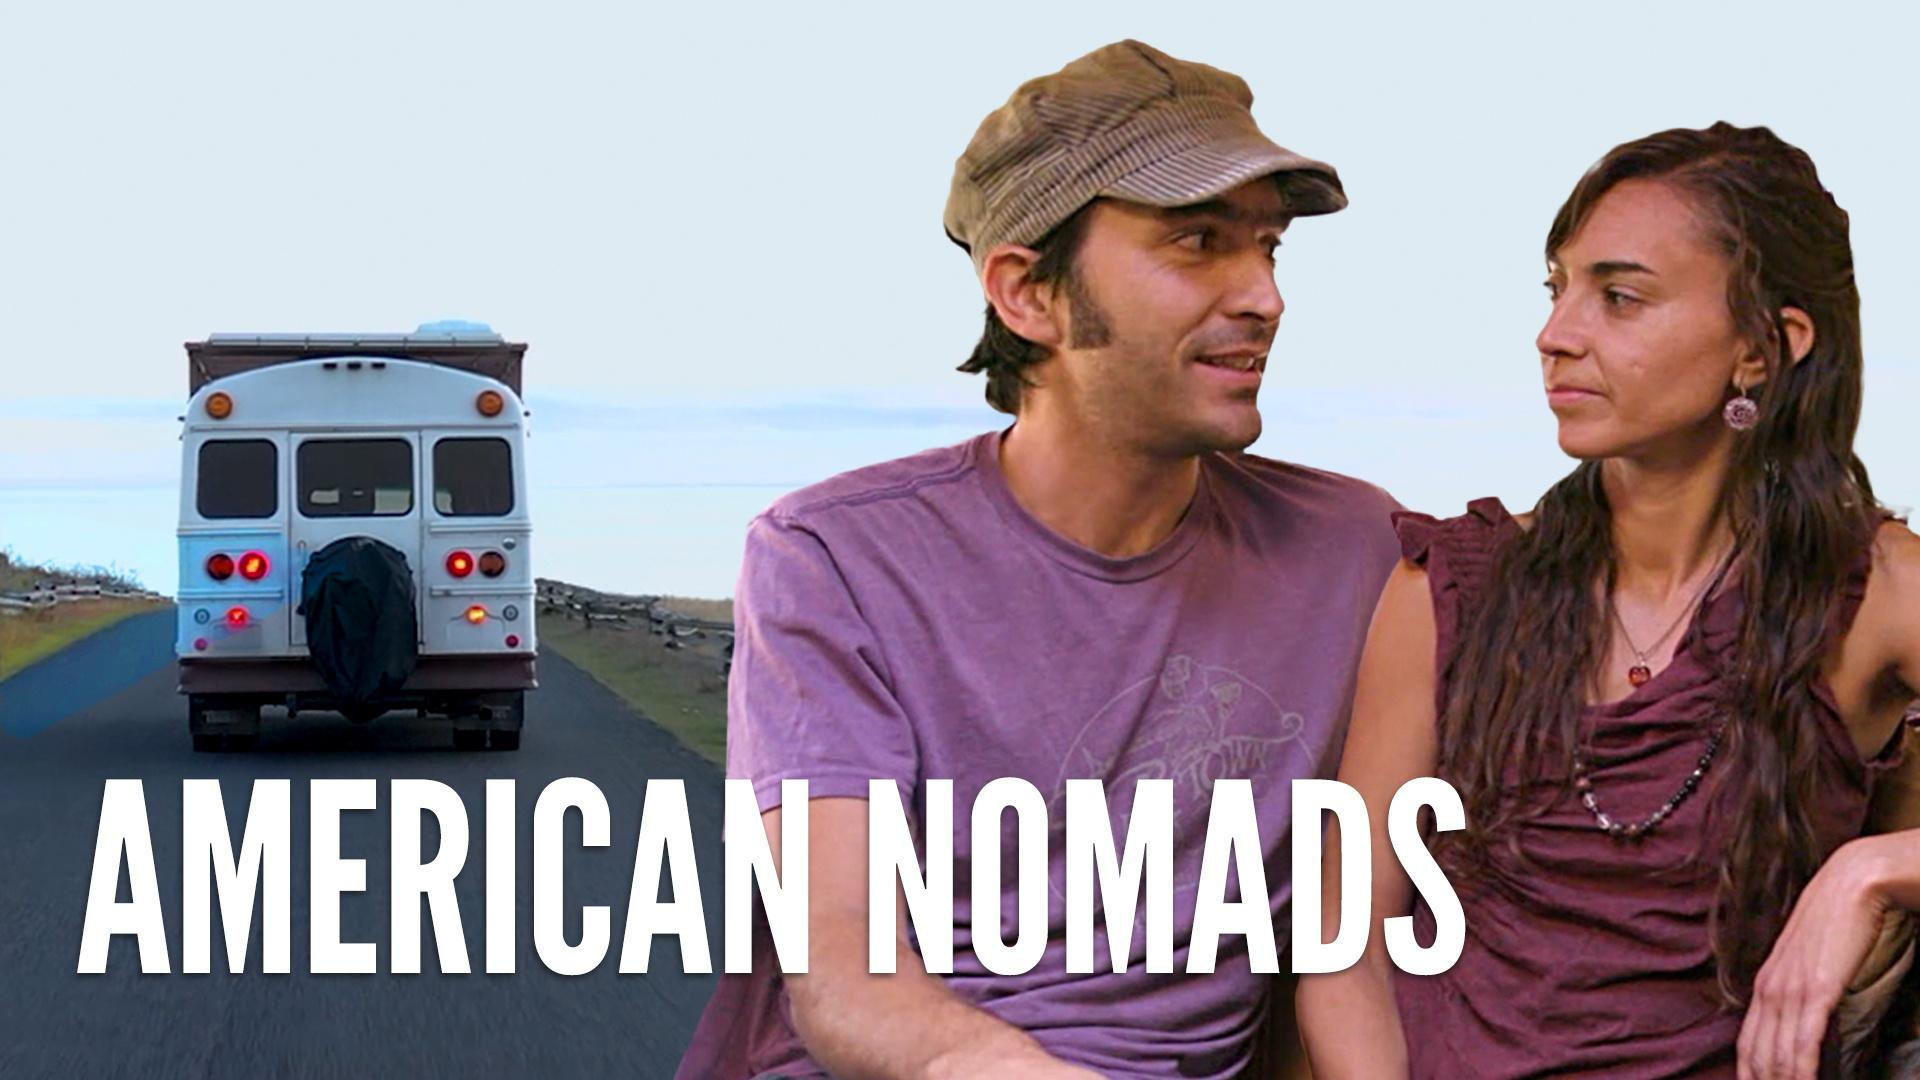 Thumbnail for: Finding Communi-Tea: Will This Couple Park the Bus? | American Nomads, Ep. 4